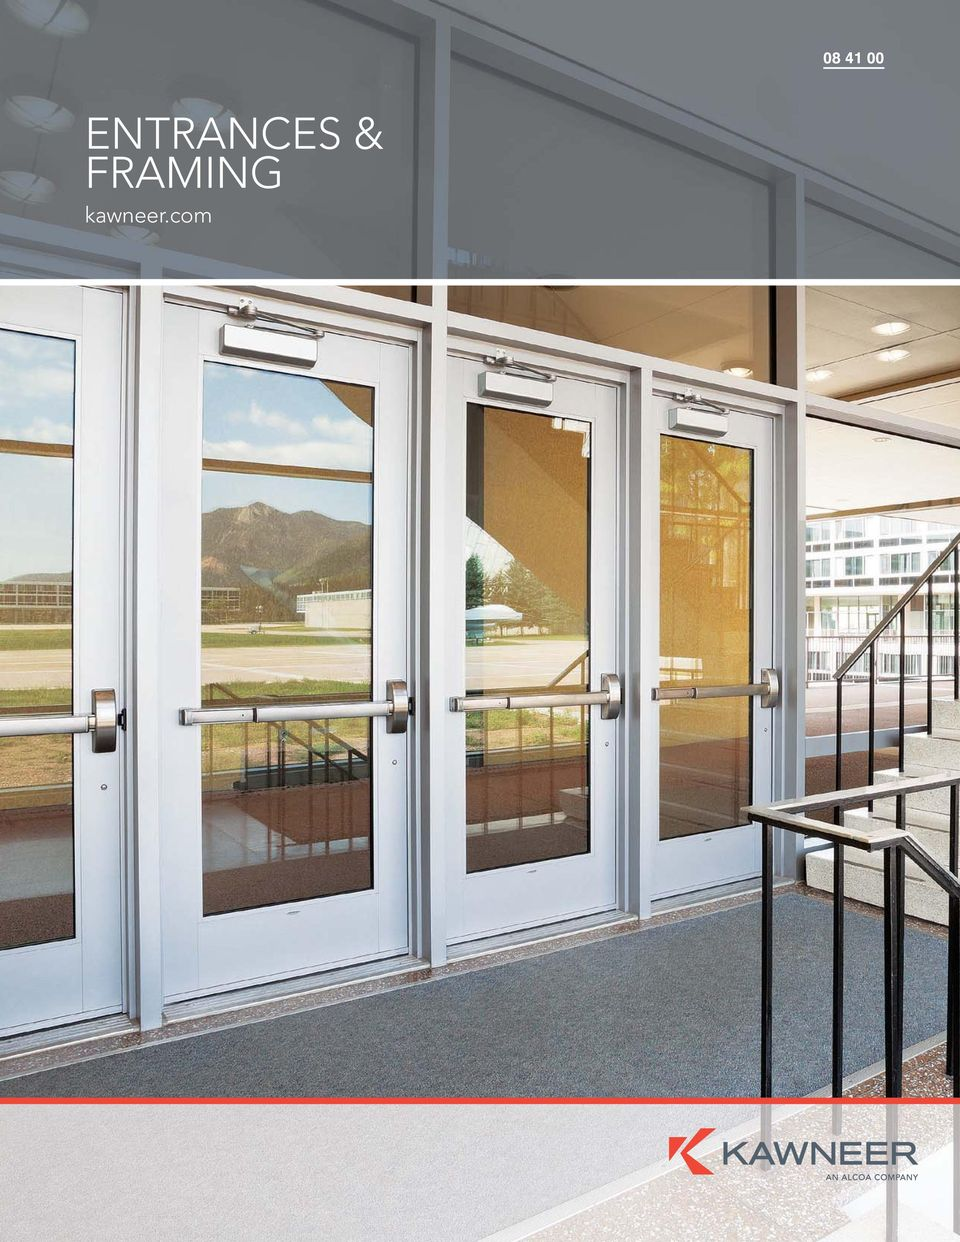 2 Entrances Framing Kawneer Offers A Comprehensive Line Of Architectural Aluminum Building S And Systems For Commercial Construction